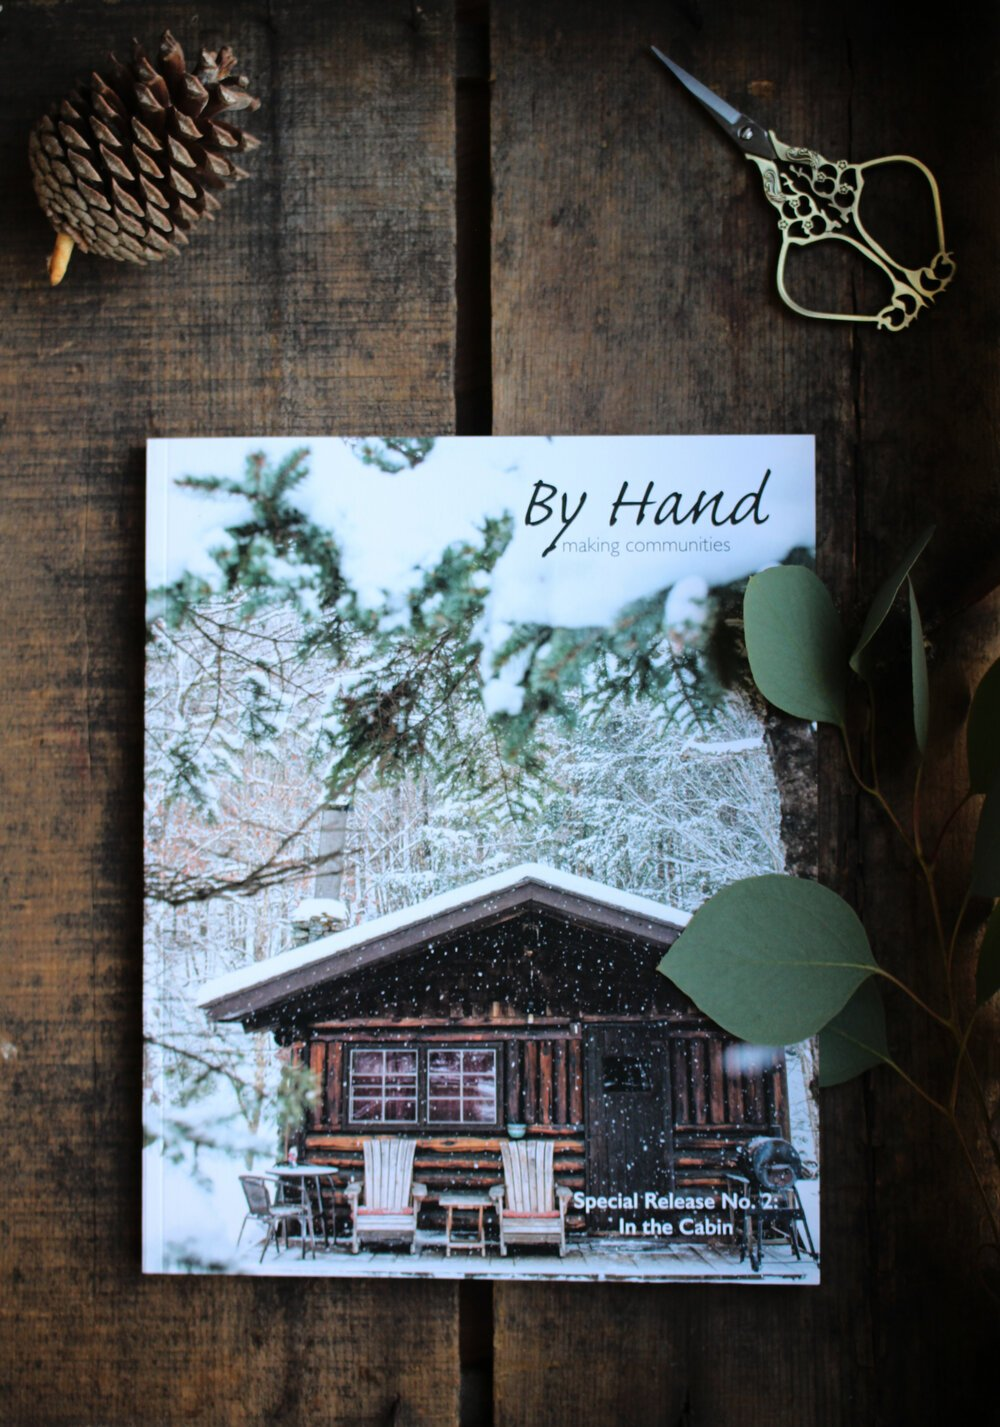 By Hand: Special Release, In the Cabin